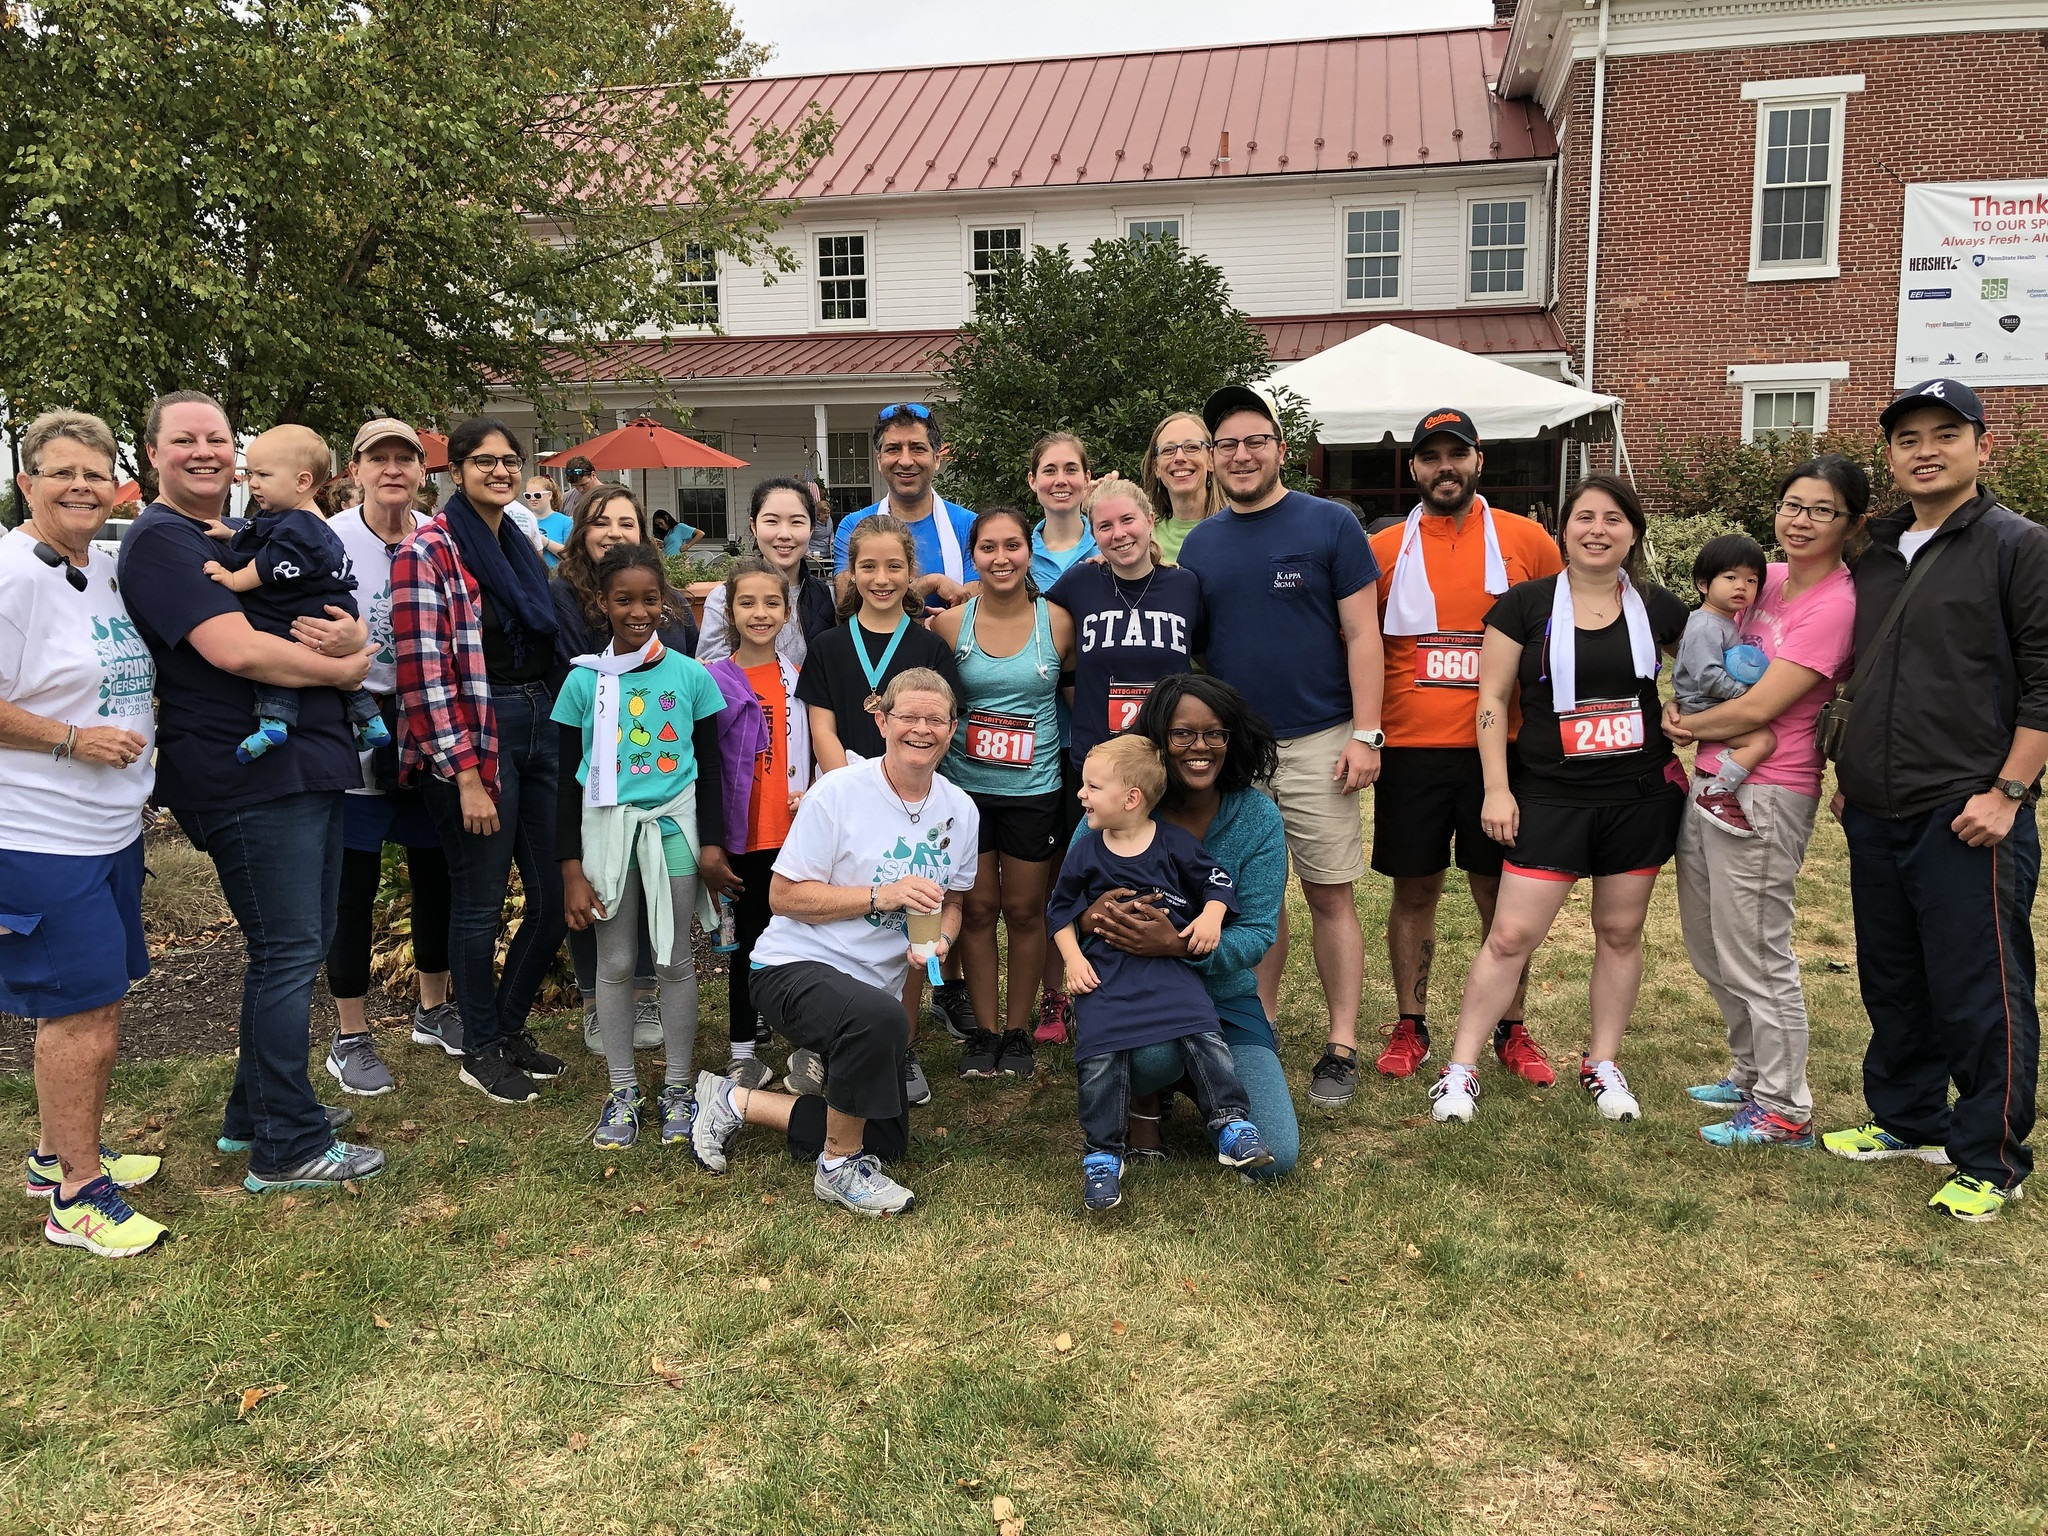 About a dozen participants from Penn State Health's first annual Sandy Sprint pose on the lawn in front of a large brick house. In the forefront, ovarian cancer patient Michelle Kirscht, dressed in a T-shirt and capris, kneels next to her cancer surgeon, Dr. Rebecca Phaeton, gynecologic oncologist at Penn State Health Milton S. Hershey Medical Center, who is holding a young boy in her lap.